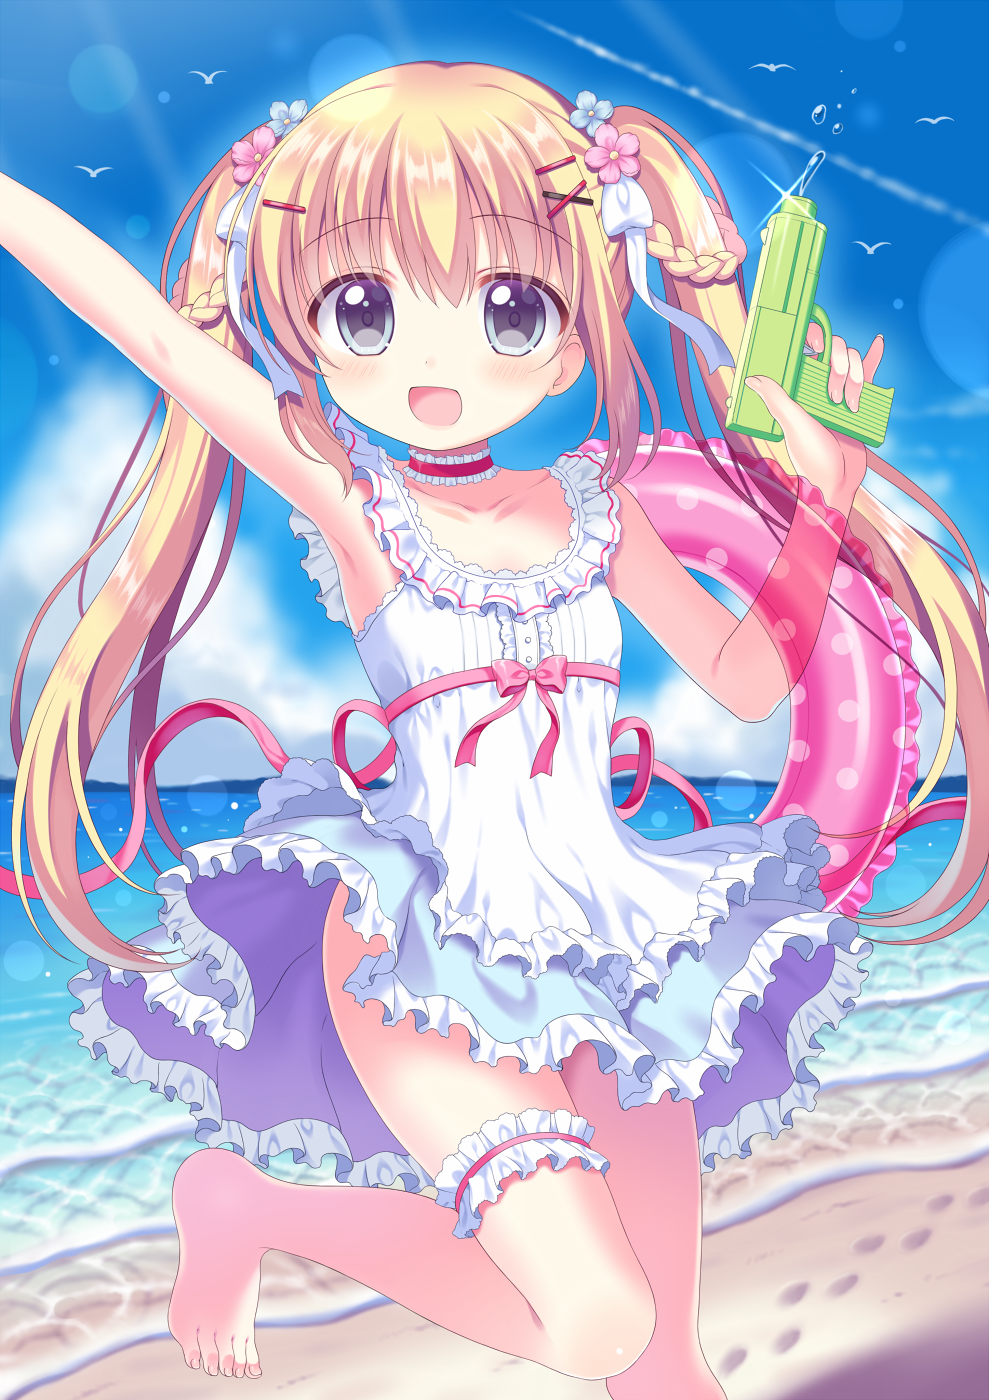 1girl :d arm_up bangs bare_arms bare_shoulders barefoot beach blonde_hair blue_eyes blue_flower blush bow braid collarbone commentary_request dress eyebrows_visible_through_hair flower frilled_dress frills hair_between_eyes hair_bow hair_flower hair_ornament highres horizon innertube long_hair moe2020 ocean open_mouth original outstretched_arm pink_flower polka_dot red_bow red_ribbon ribbon riria_(happy_strawberry) sand sleeveless sleeveless_dress smile solo standing standing_on_one_leg transparent twintails very_long_hair water water_gun white_bow white_dress